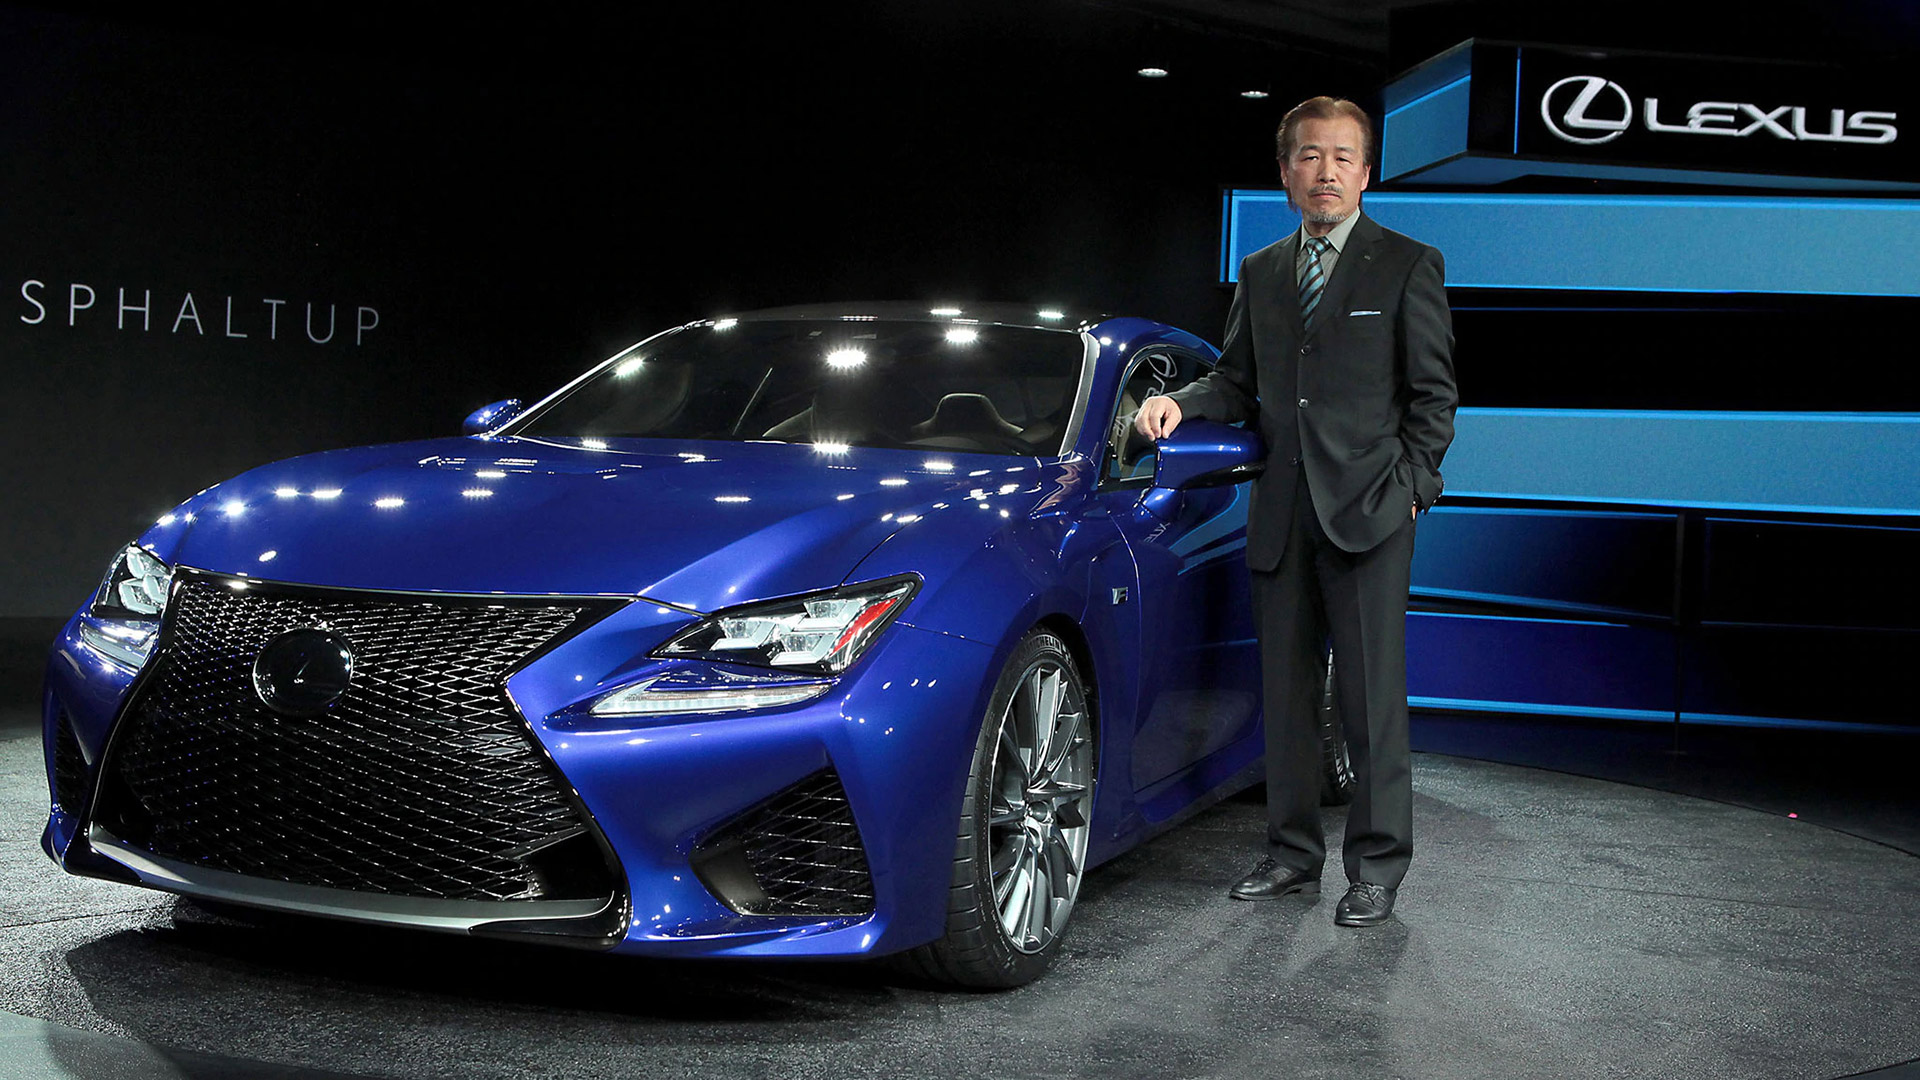 2020 010 Iconische Chief engineer Lexus F modellen hero